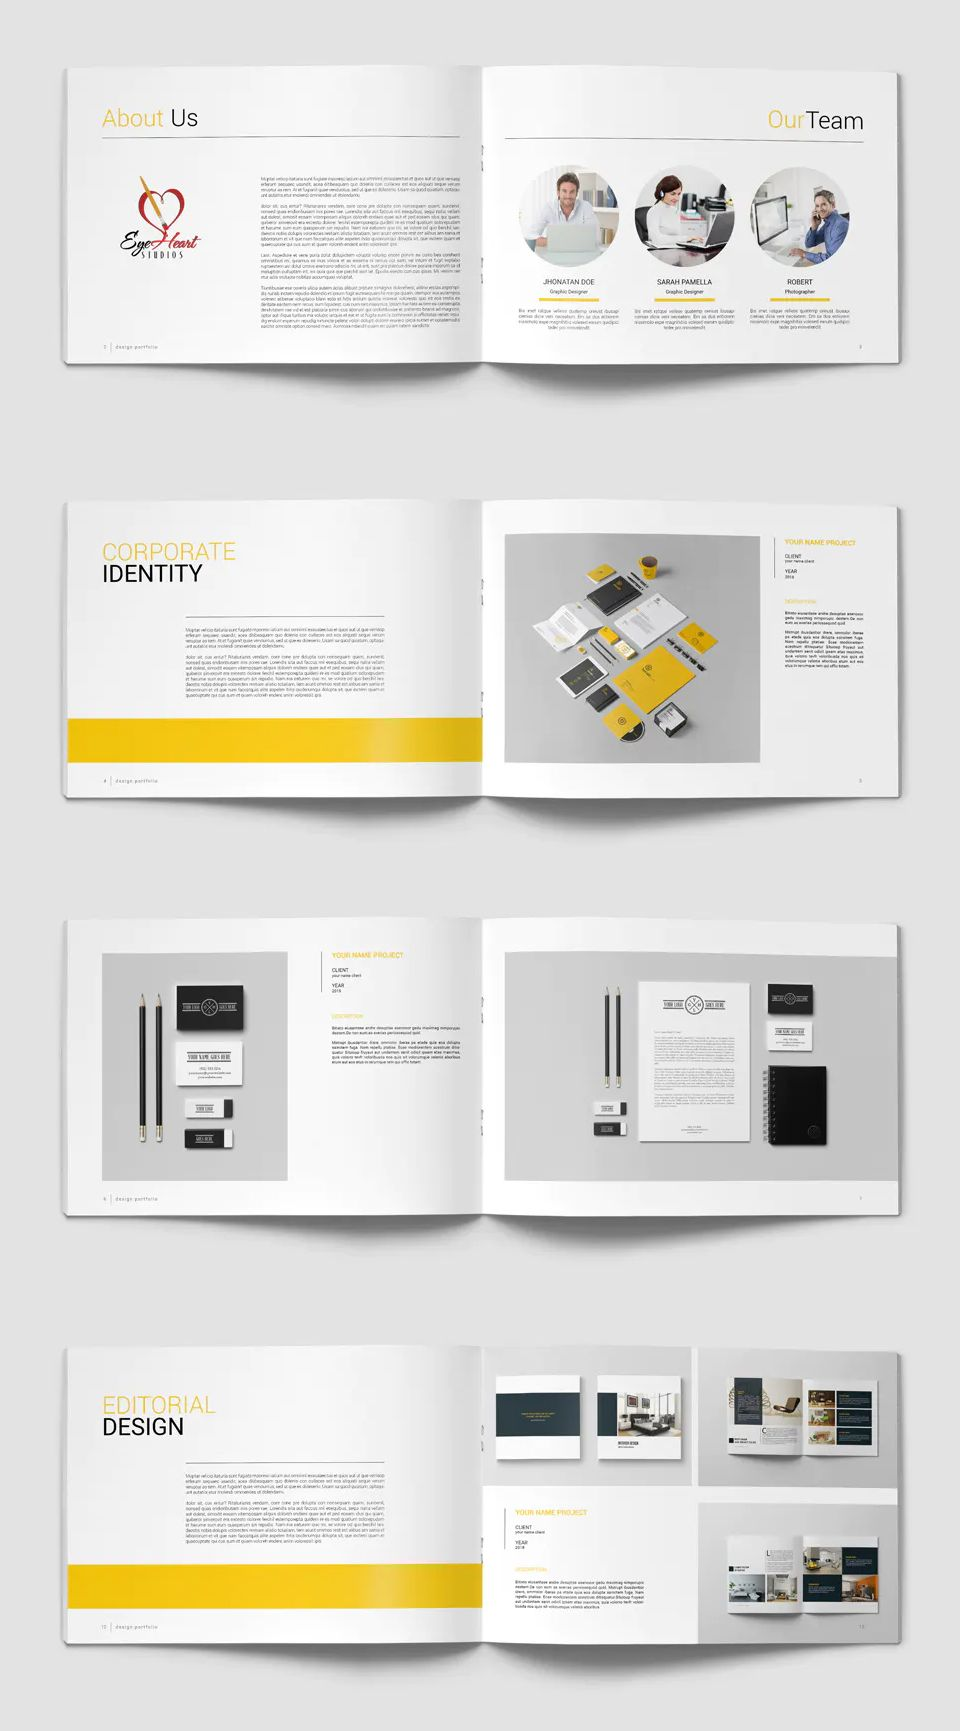 Graphic Design Portfolio Brochure Template InDesign INDD - 40 Pages - A4 and US Letter Size